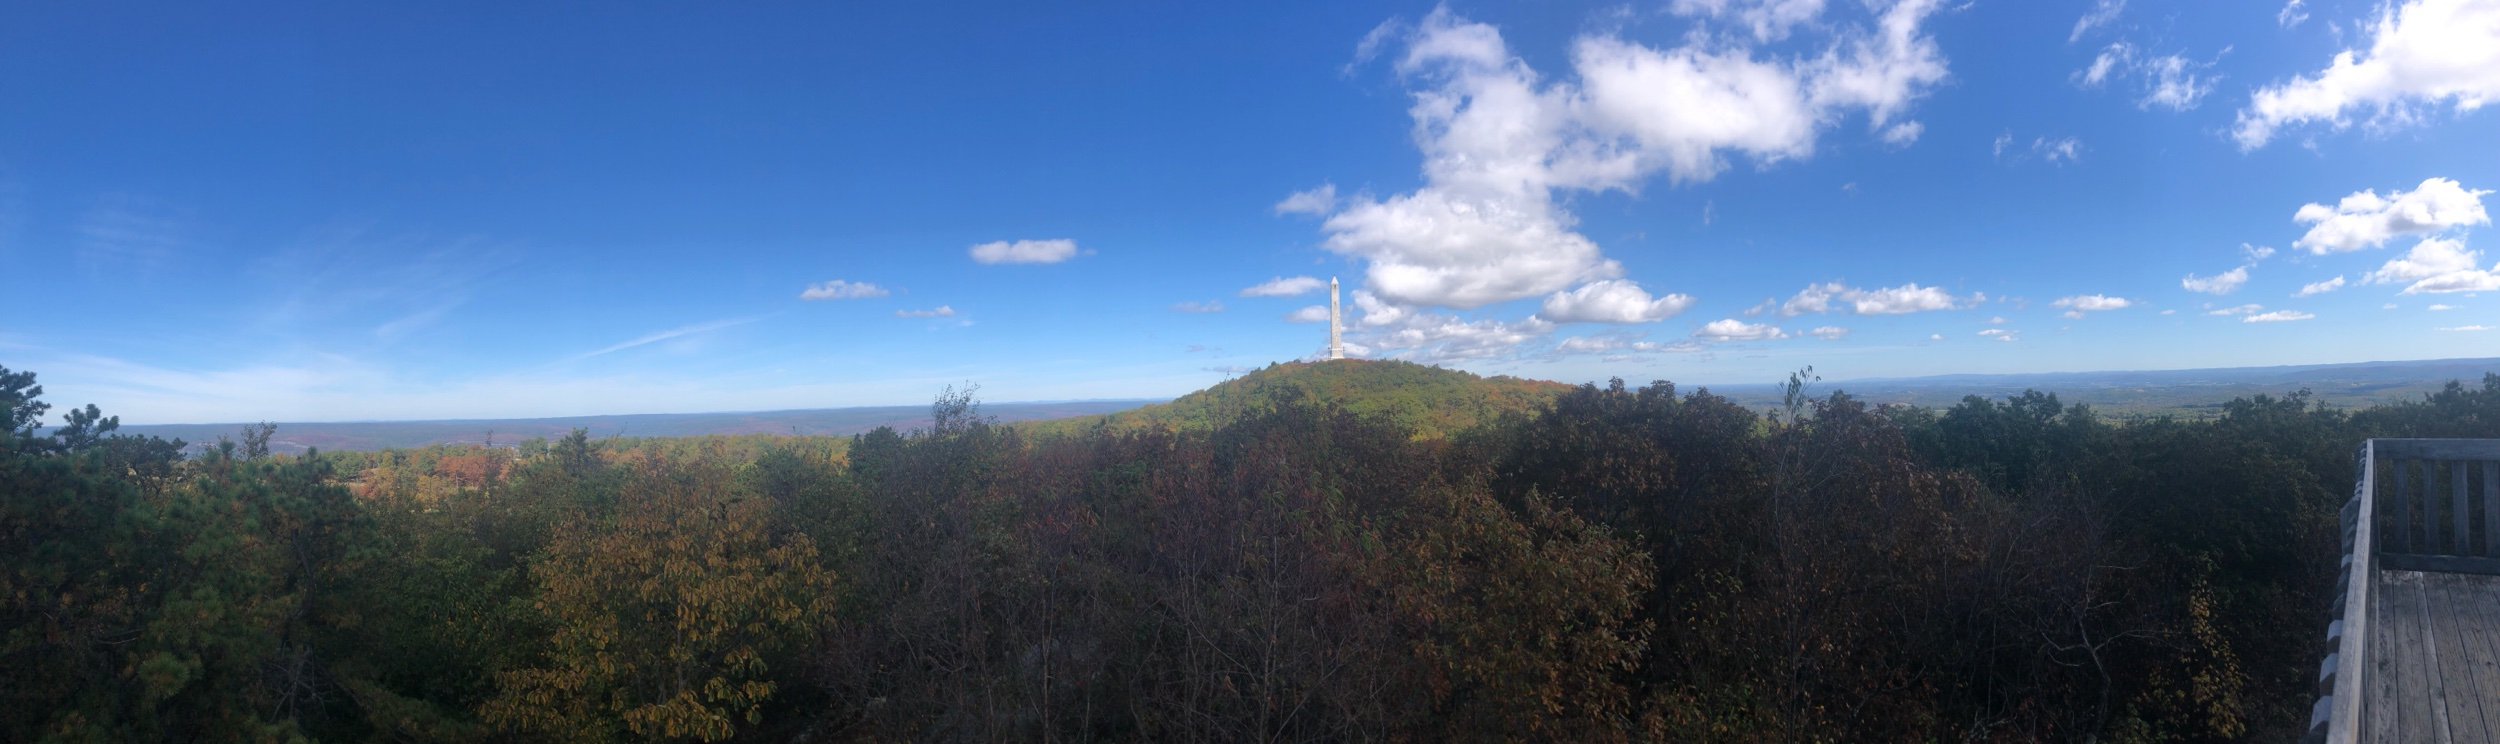 The View Atop High Point with the Vetrans Memorial